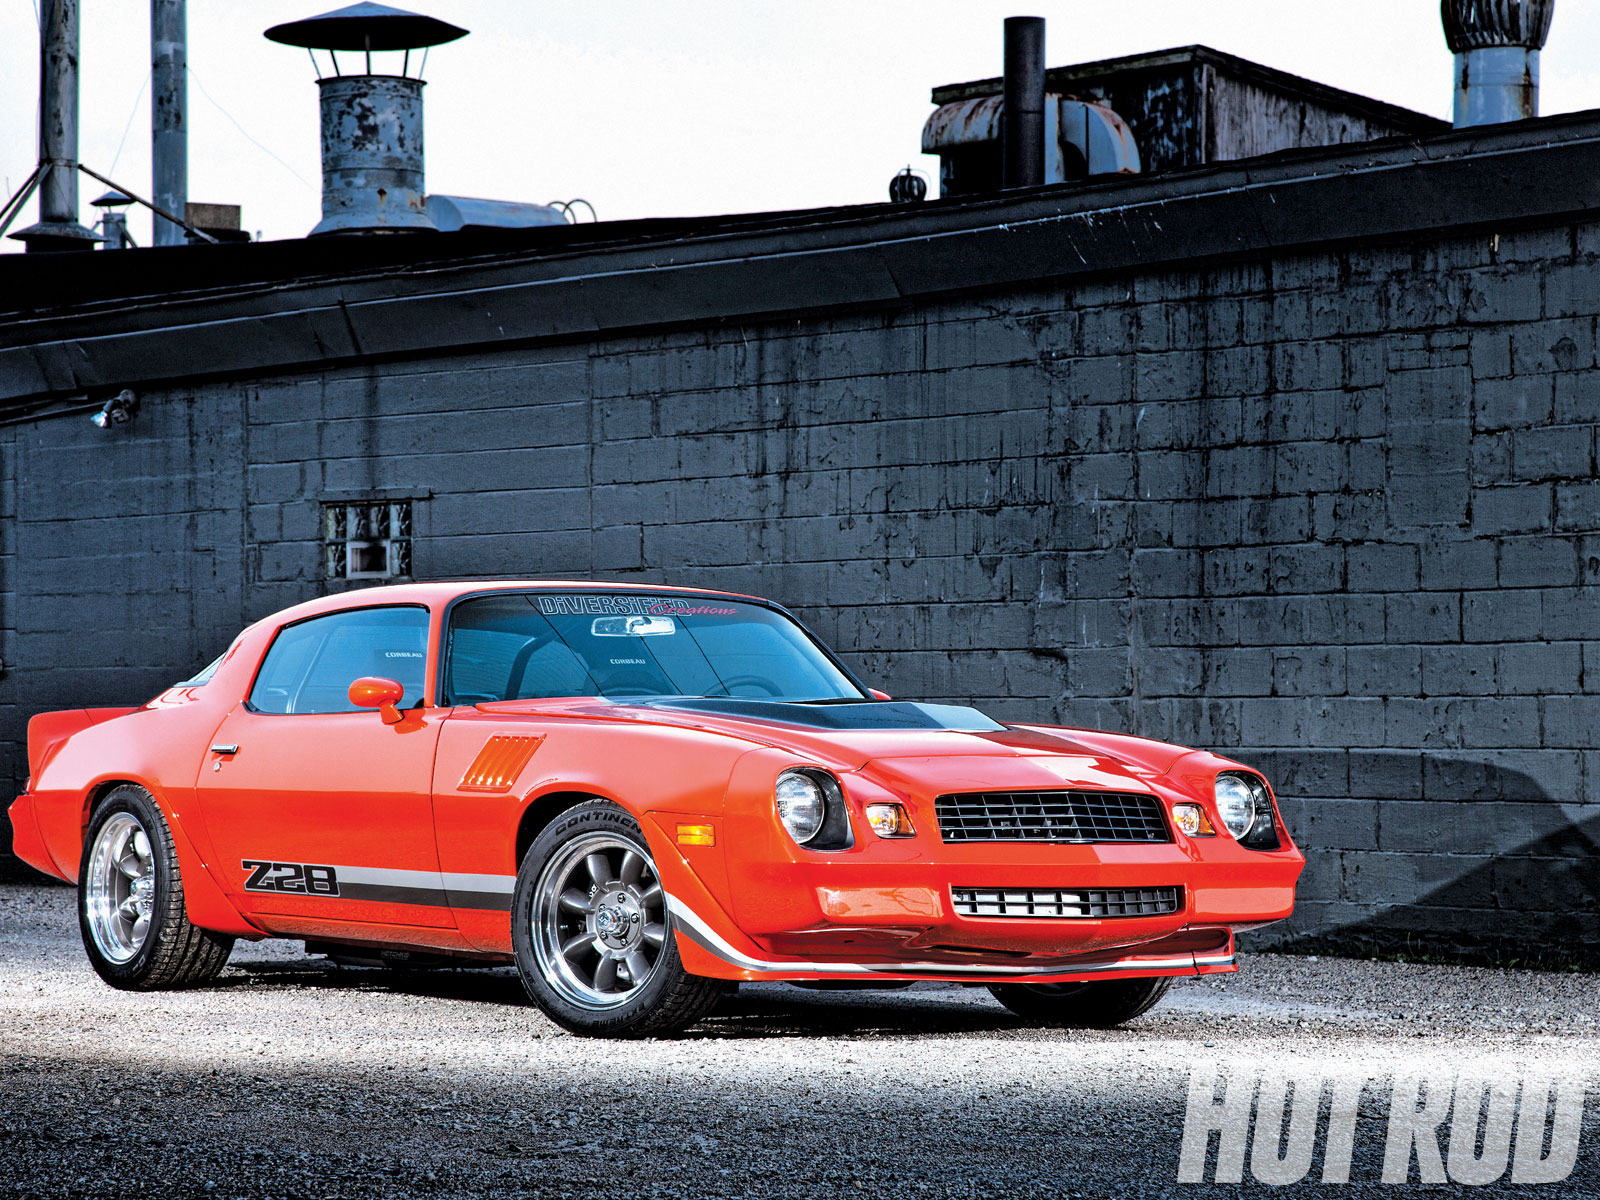 3dtuning Of Chevrolet Camaro Z28 Coupe 1979 3dtuning Com